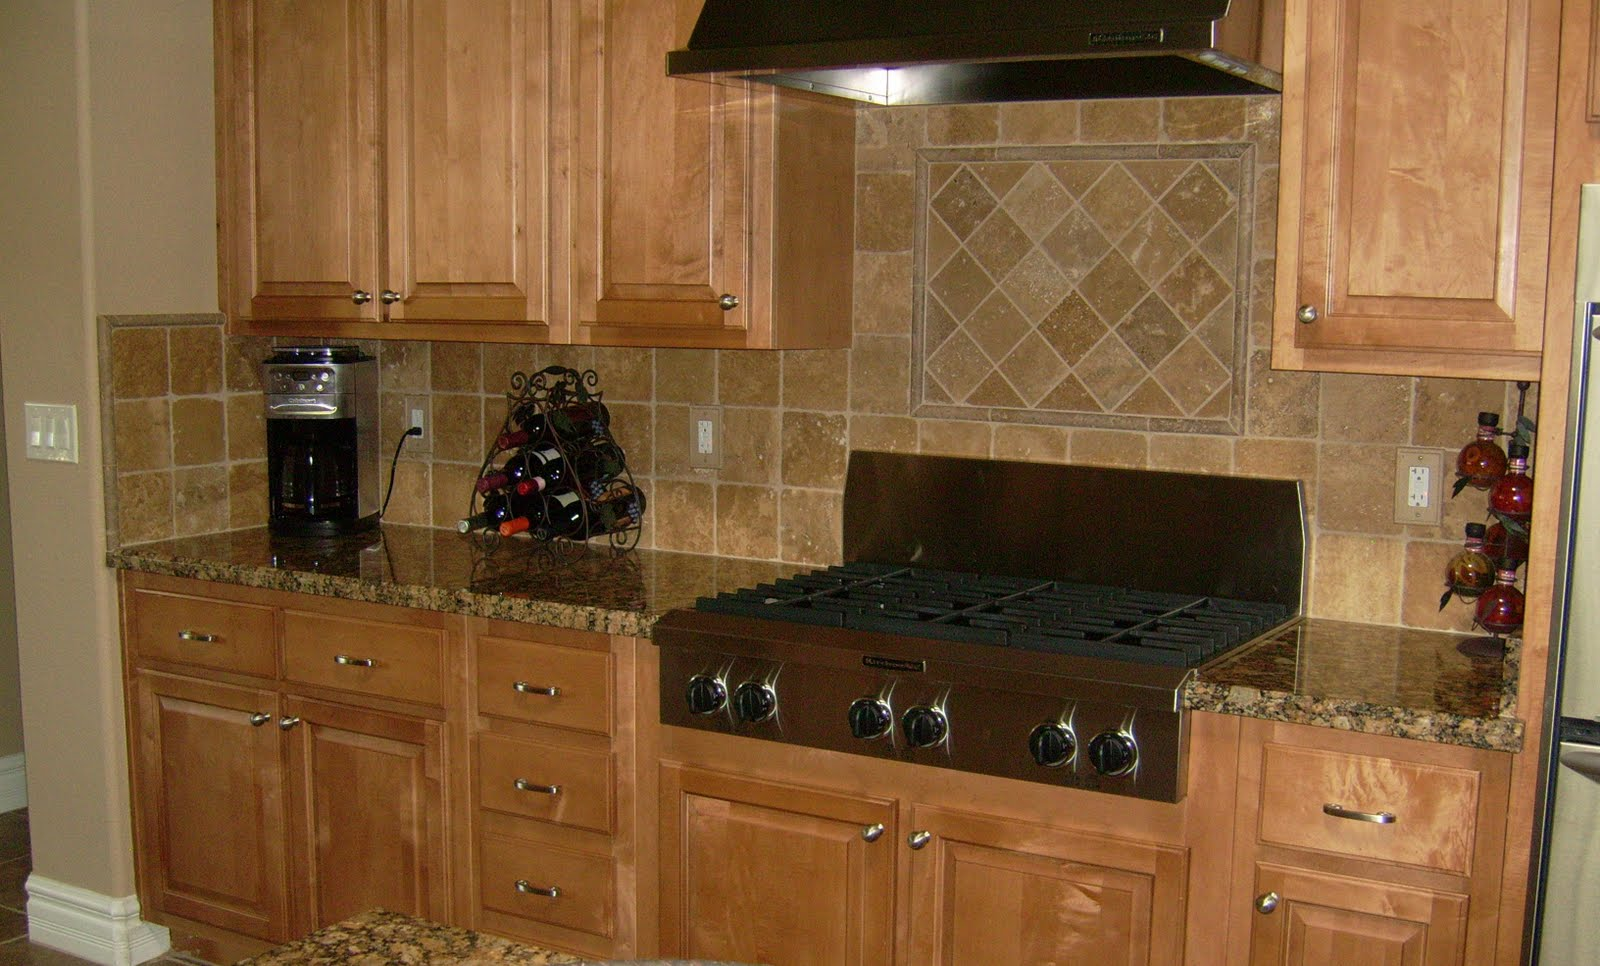 kitchen remodel for small kitchens on Pictures Kitchen Backsplash Ideas 6x6 Tumbled Stone Kitchen Backsplash ...